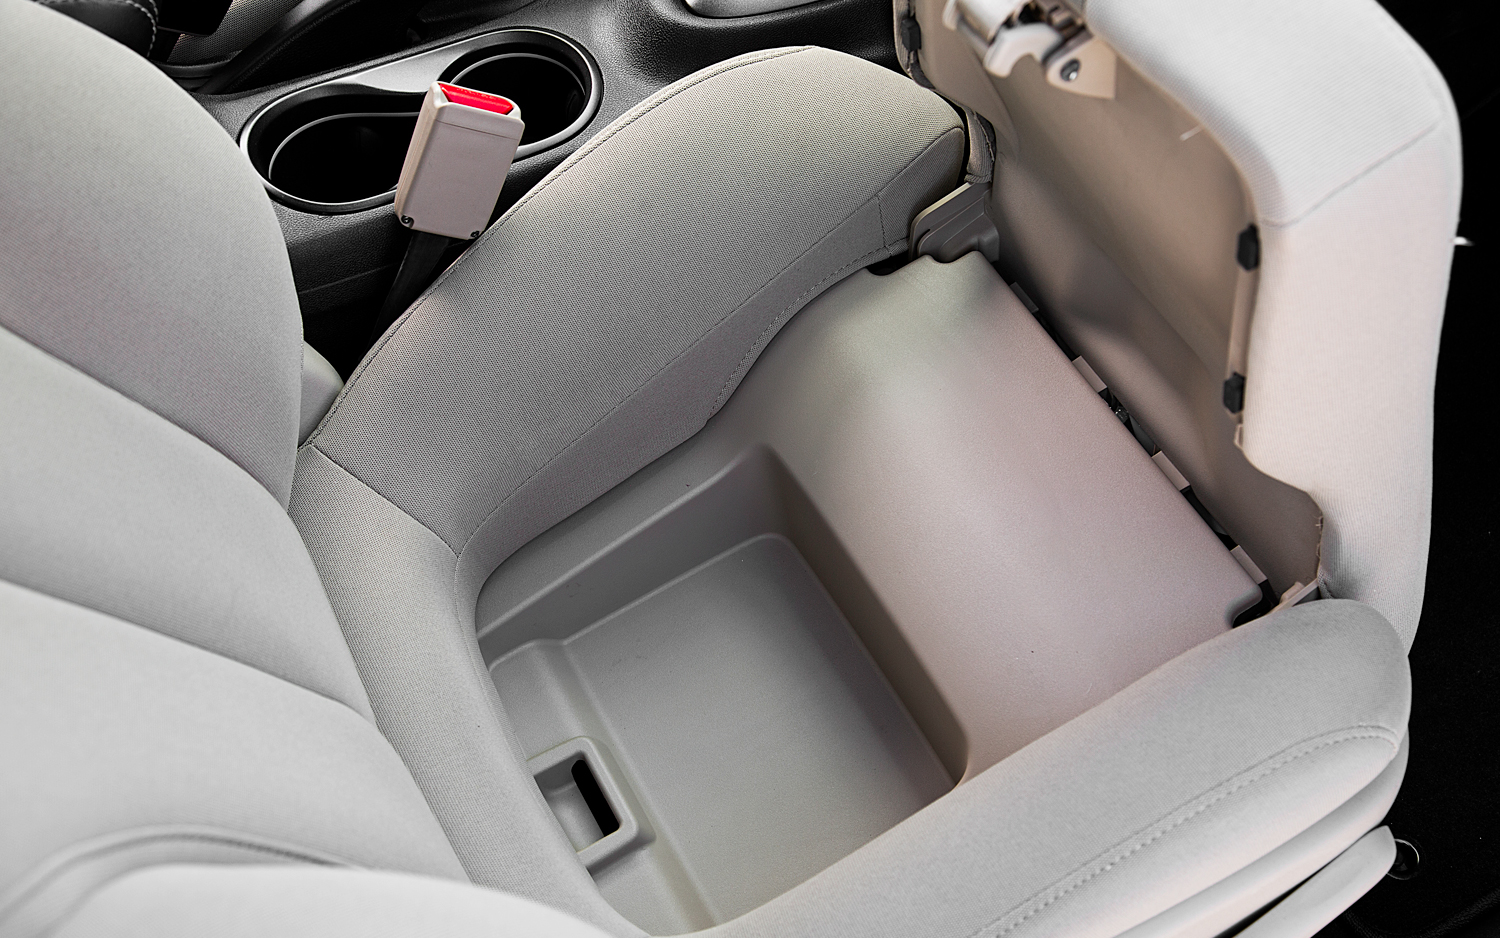 Click image for larger version  Name:2013-Dodge-Dart-Limited-seat-compartment.jpg Views:92 Size:981.1 KB ID:170054